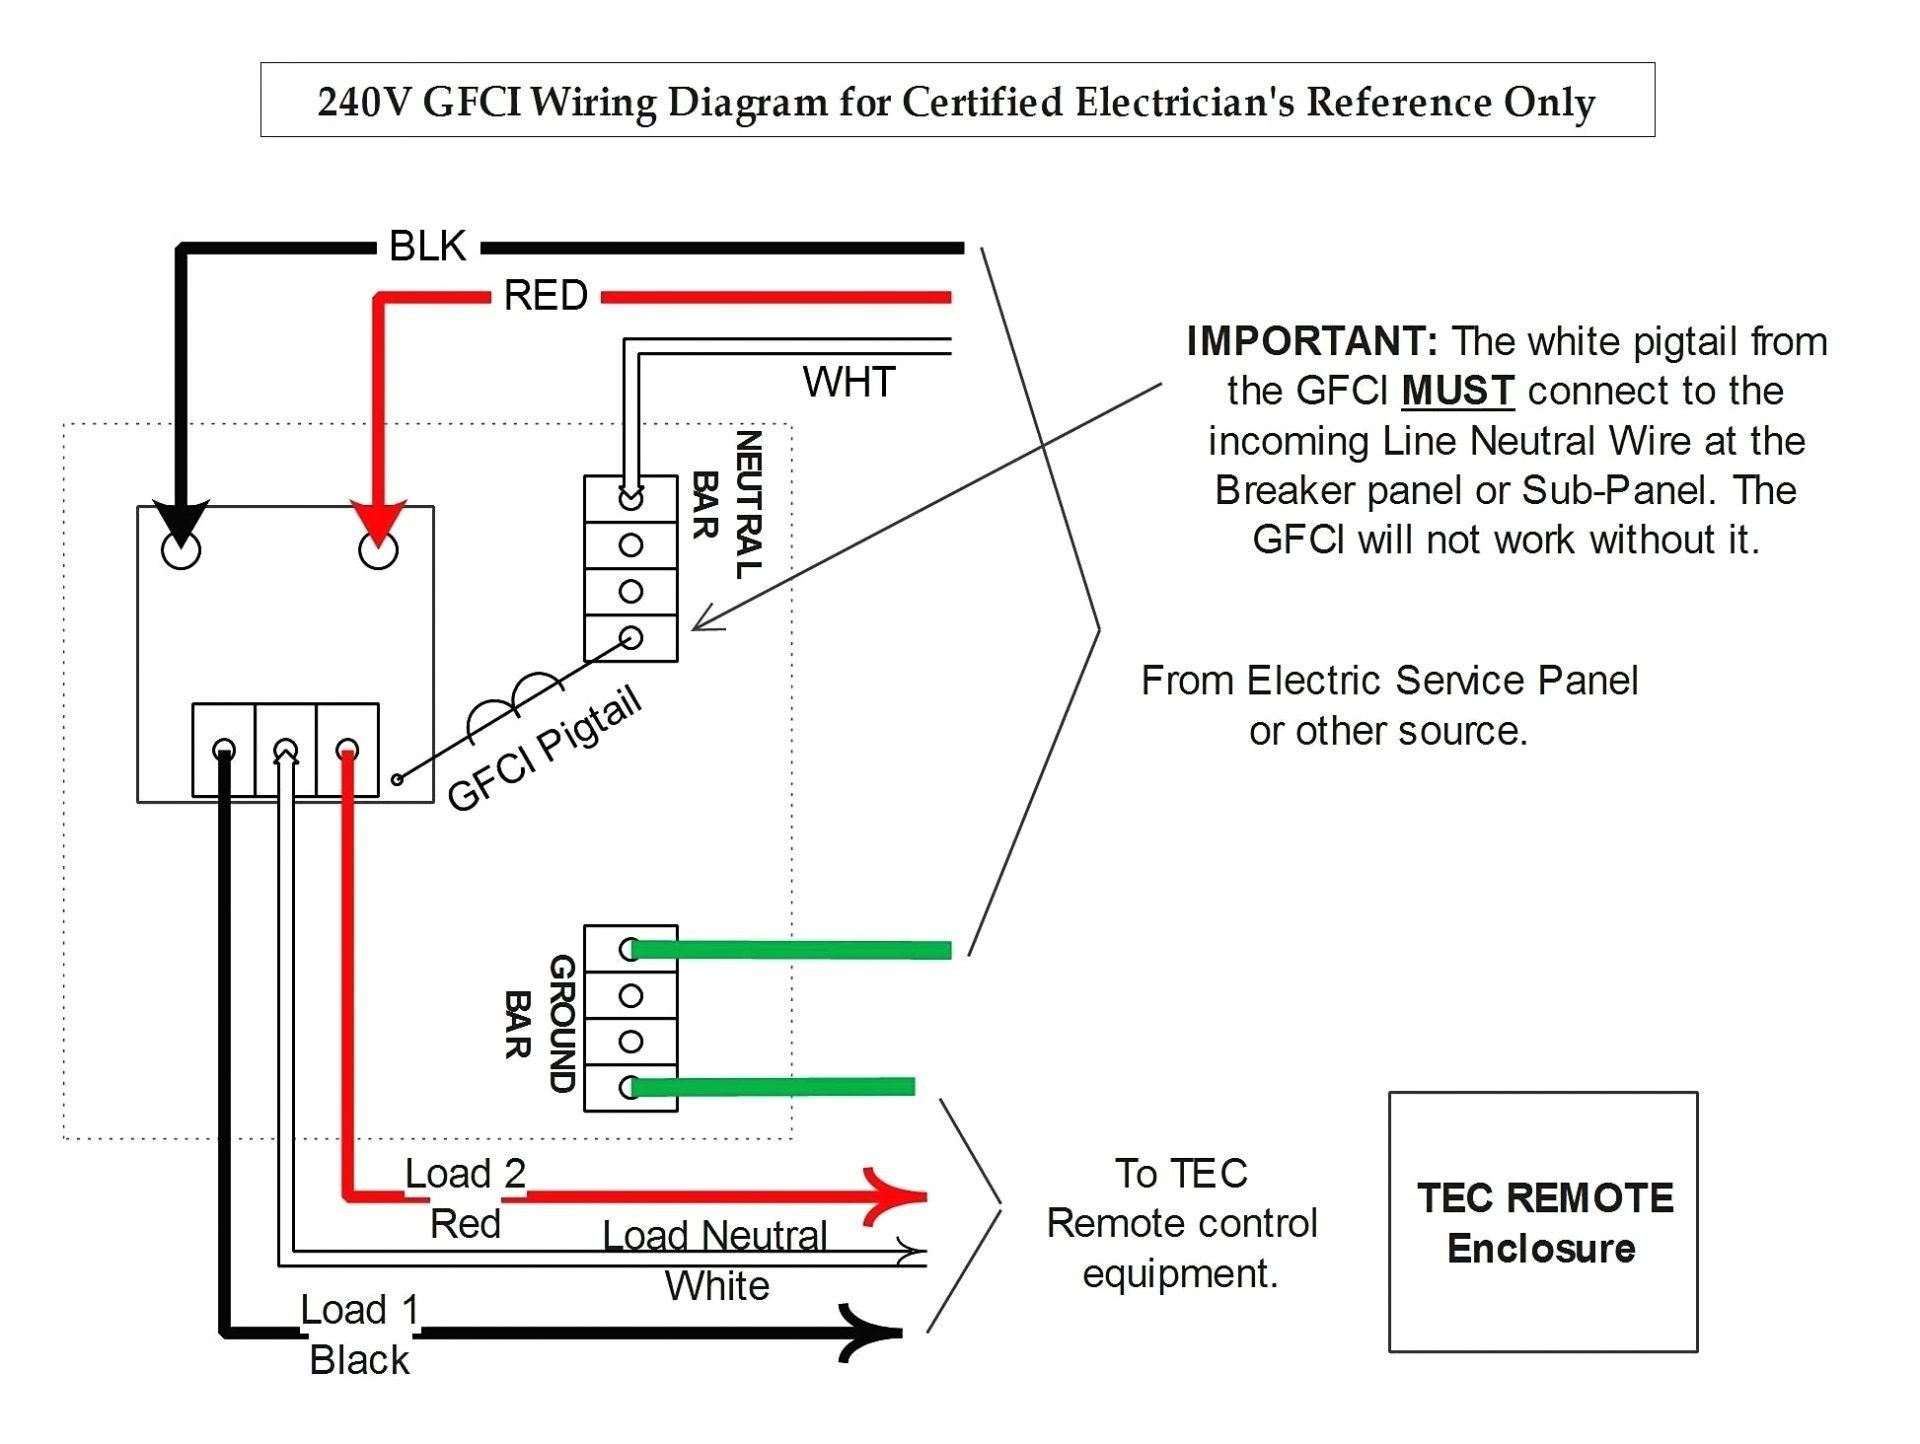 Unique Wiring Diagram For Extractor Fan With Timer Diagram Diagramsample Diagramtemplate Wiringdiagram Diagramchart W Diagram Car Lifts Two Post Car Lift